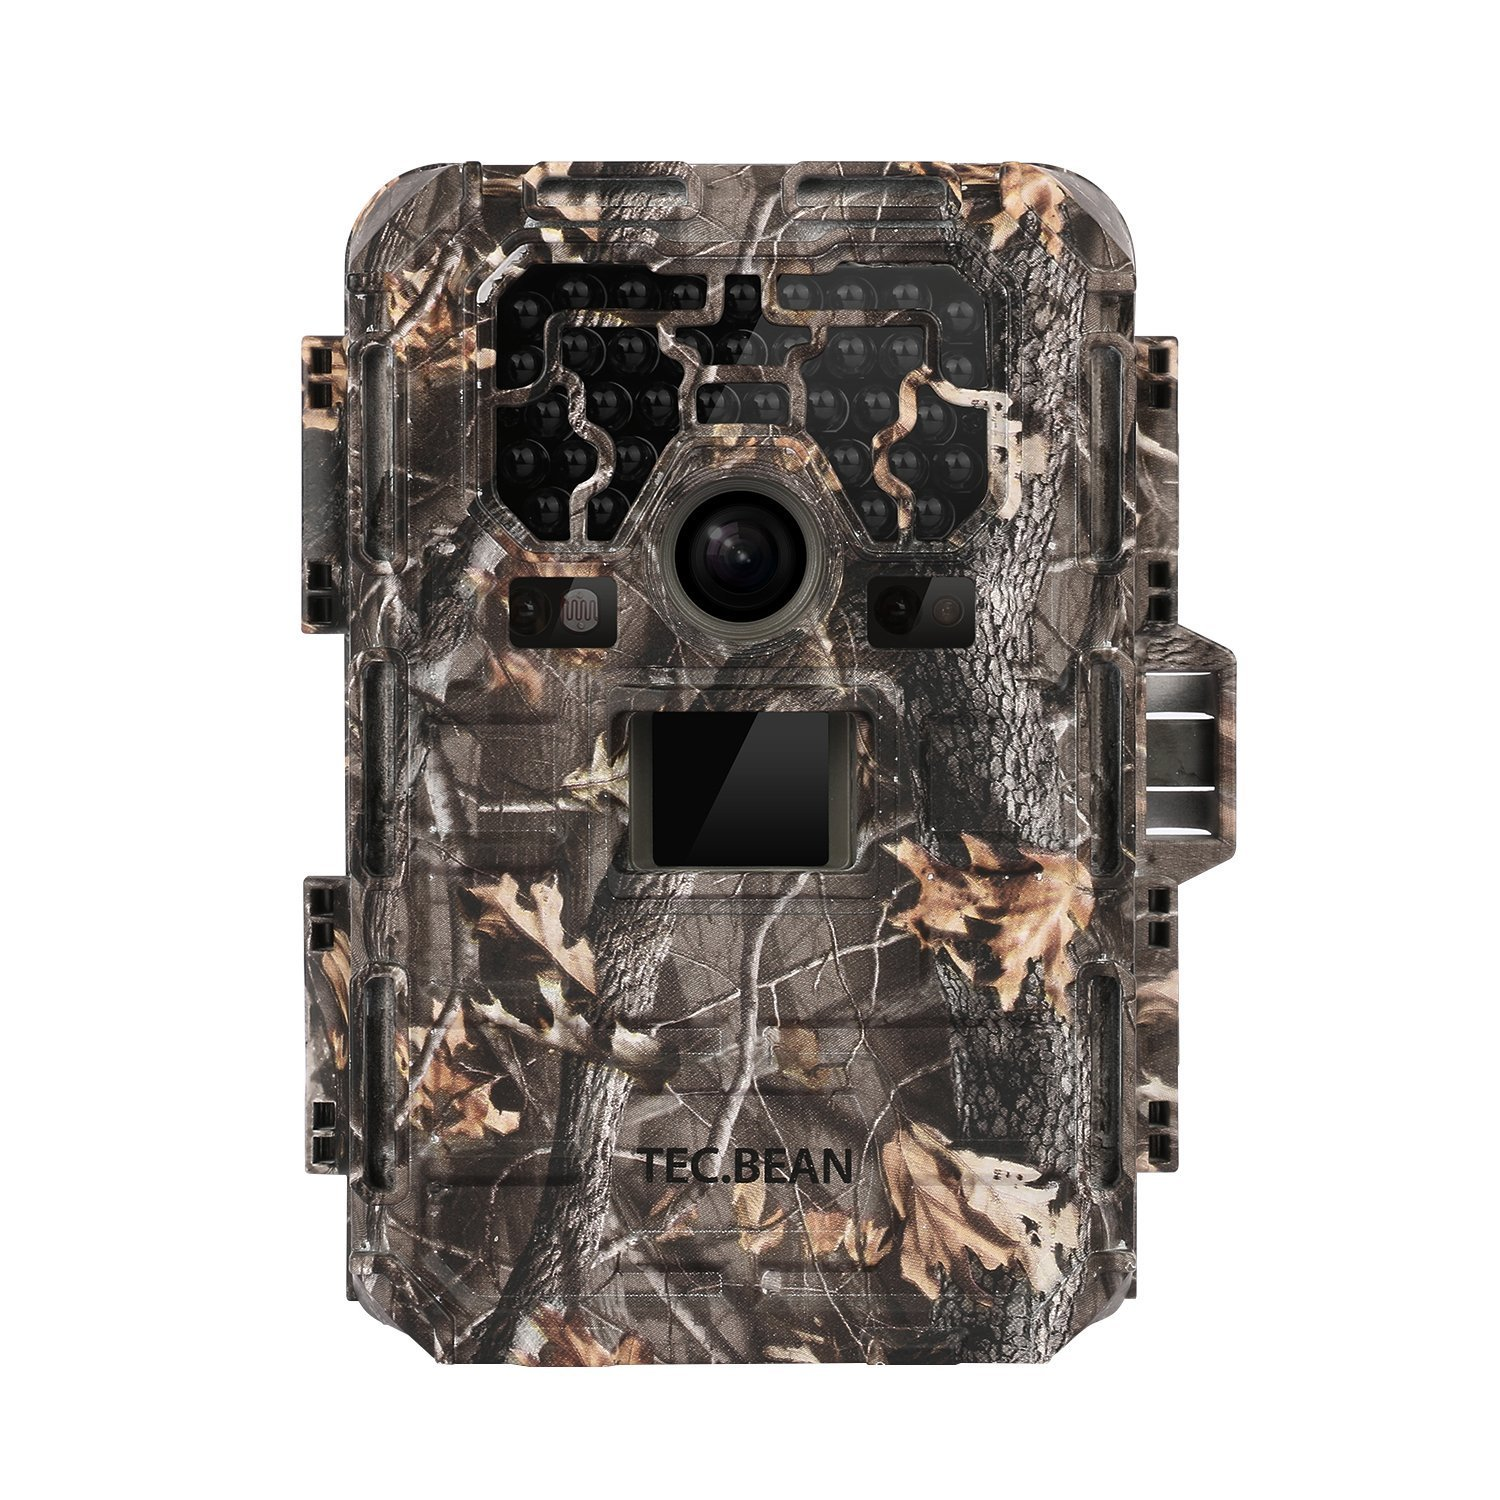 TEC.BEAN 12 MP 1080P HD Trail and Game Camera